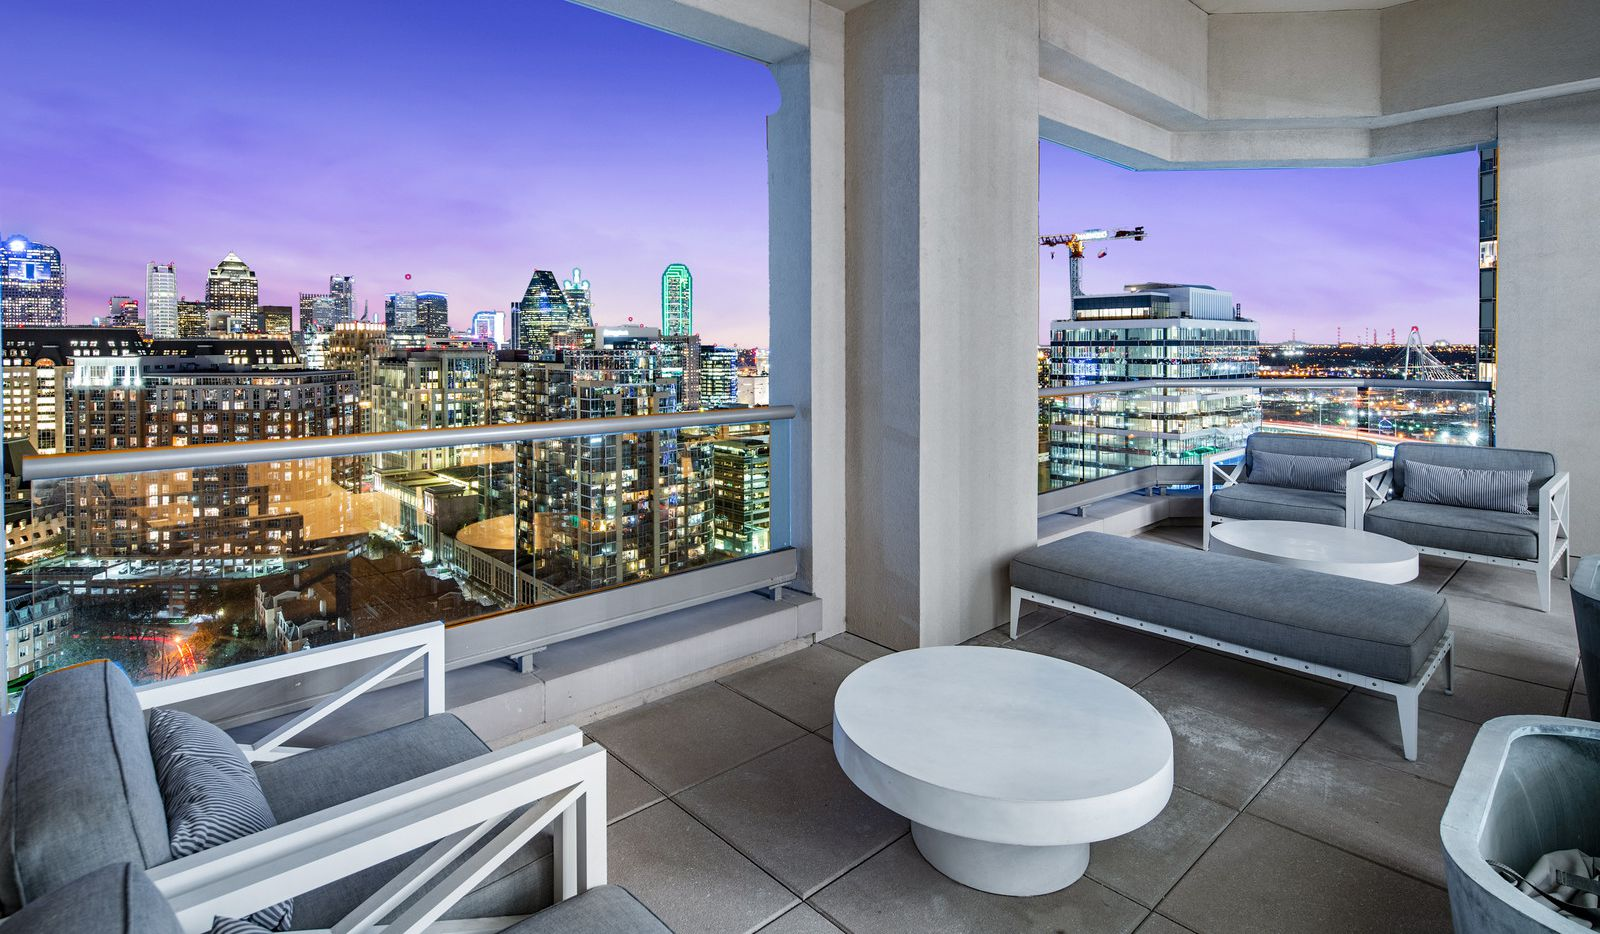 The penthouse at the Stoneleigh, 2300 Wolf, Unit 20